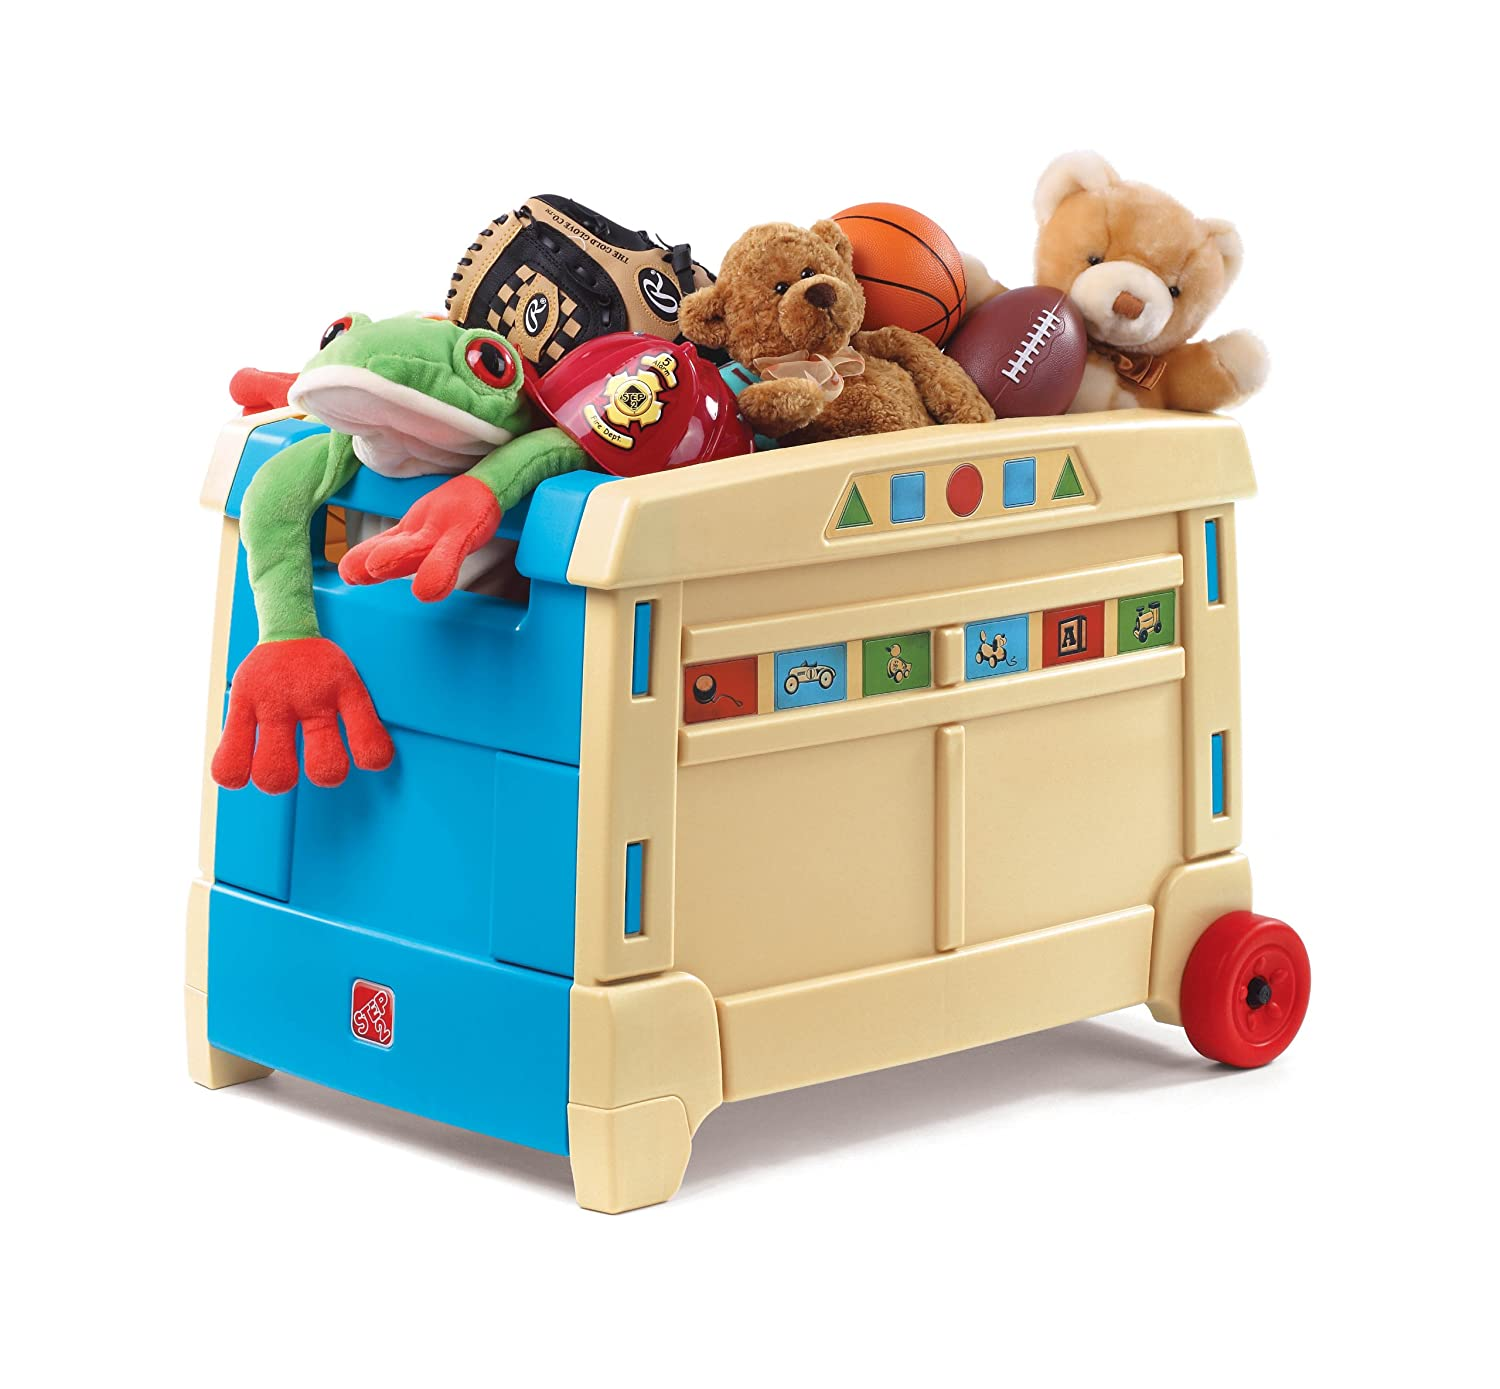 Best Toy Storage Containers : Best toys for kids the three toy boxes your